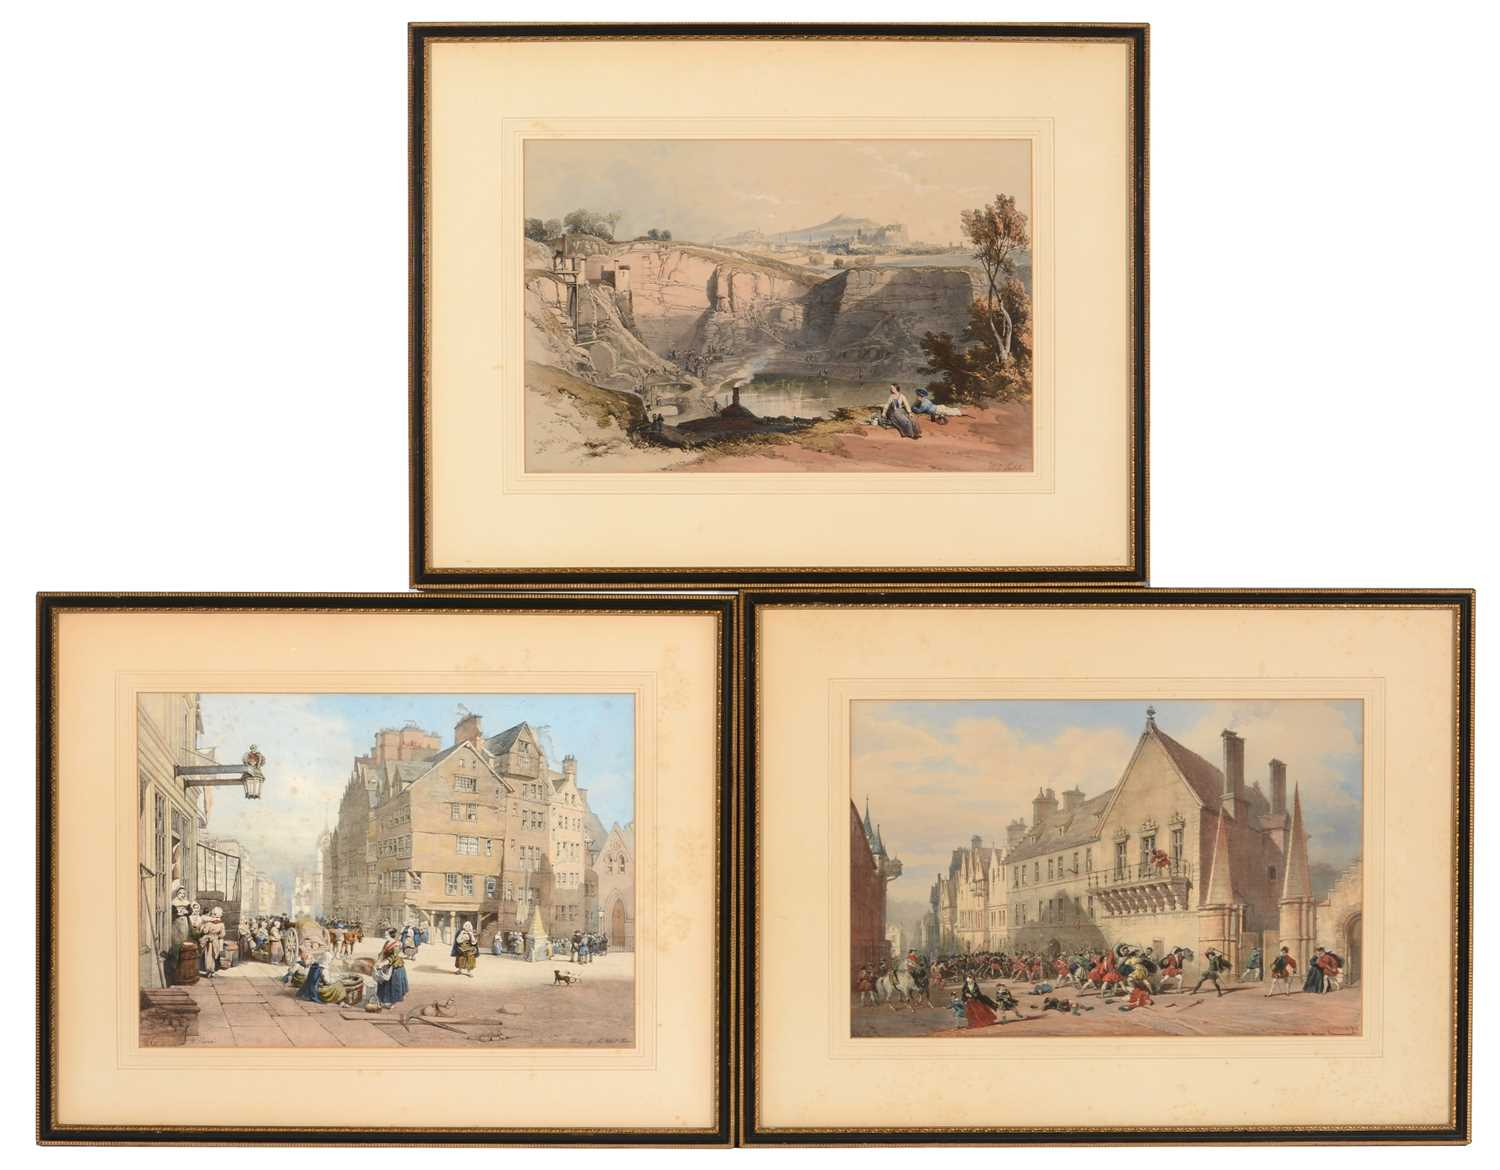 Lot 617 - After J* Nash and W L Leitch - lithographs